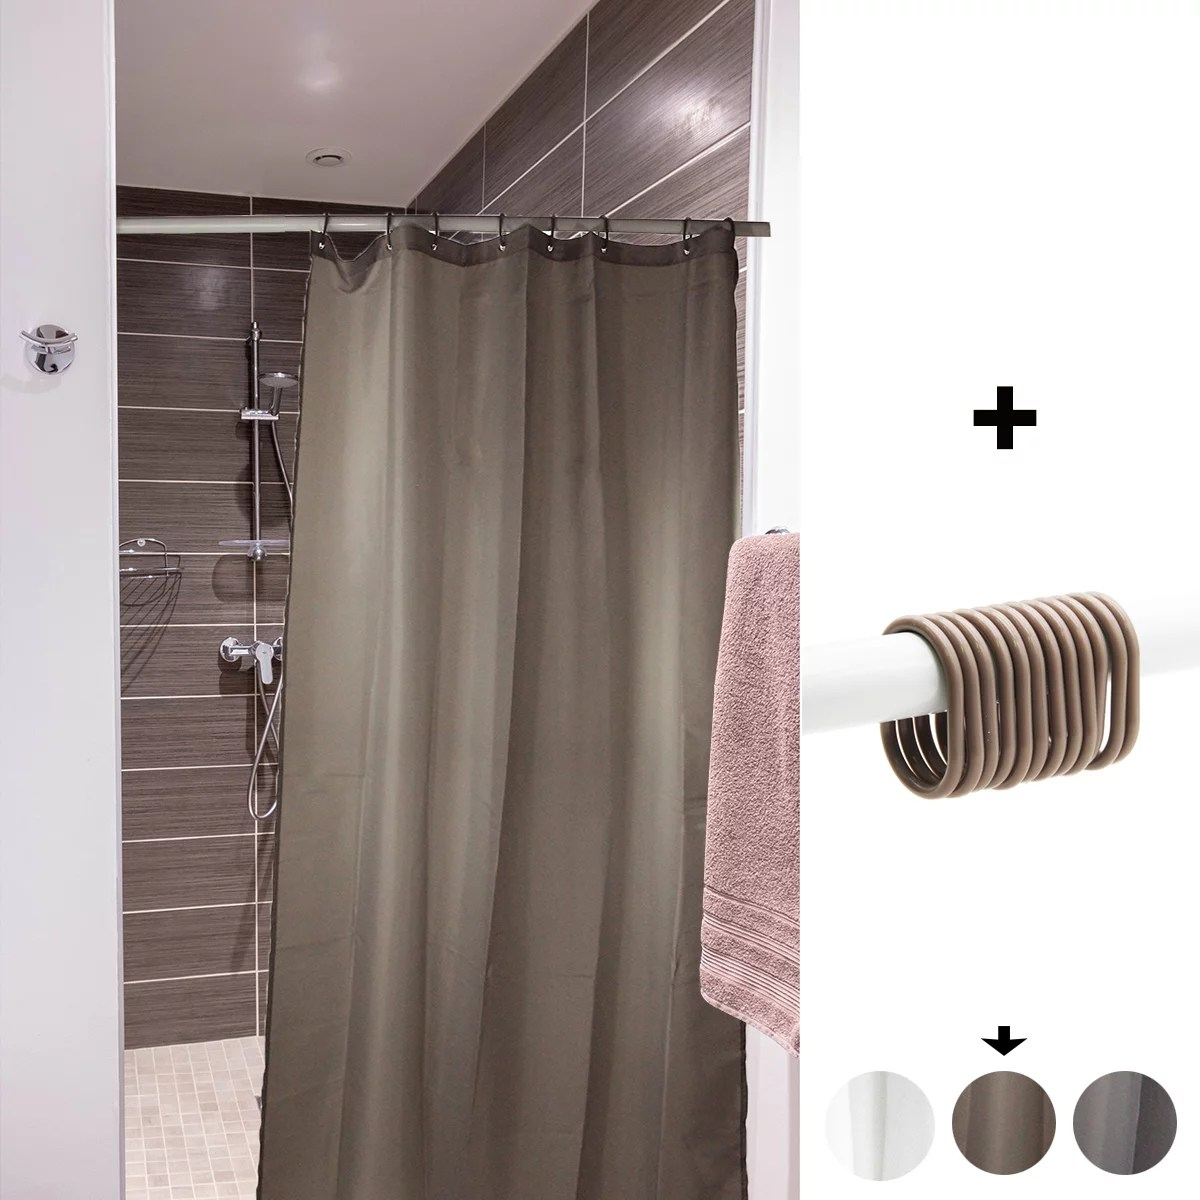 mildew resistant small stall shower curtain liner narrow size 48 w x 72 h inch 8 matching rings tan